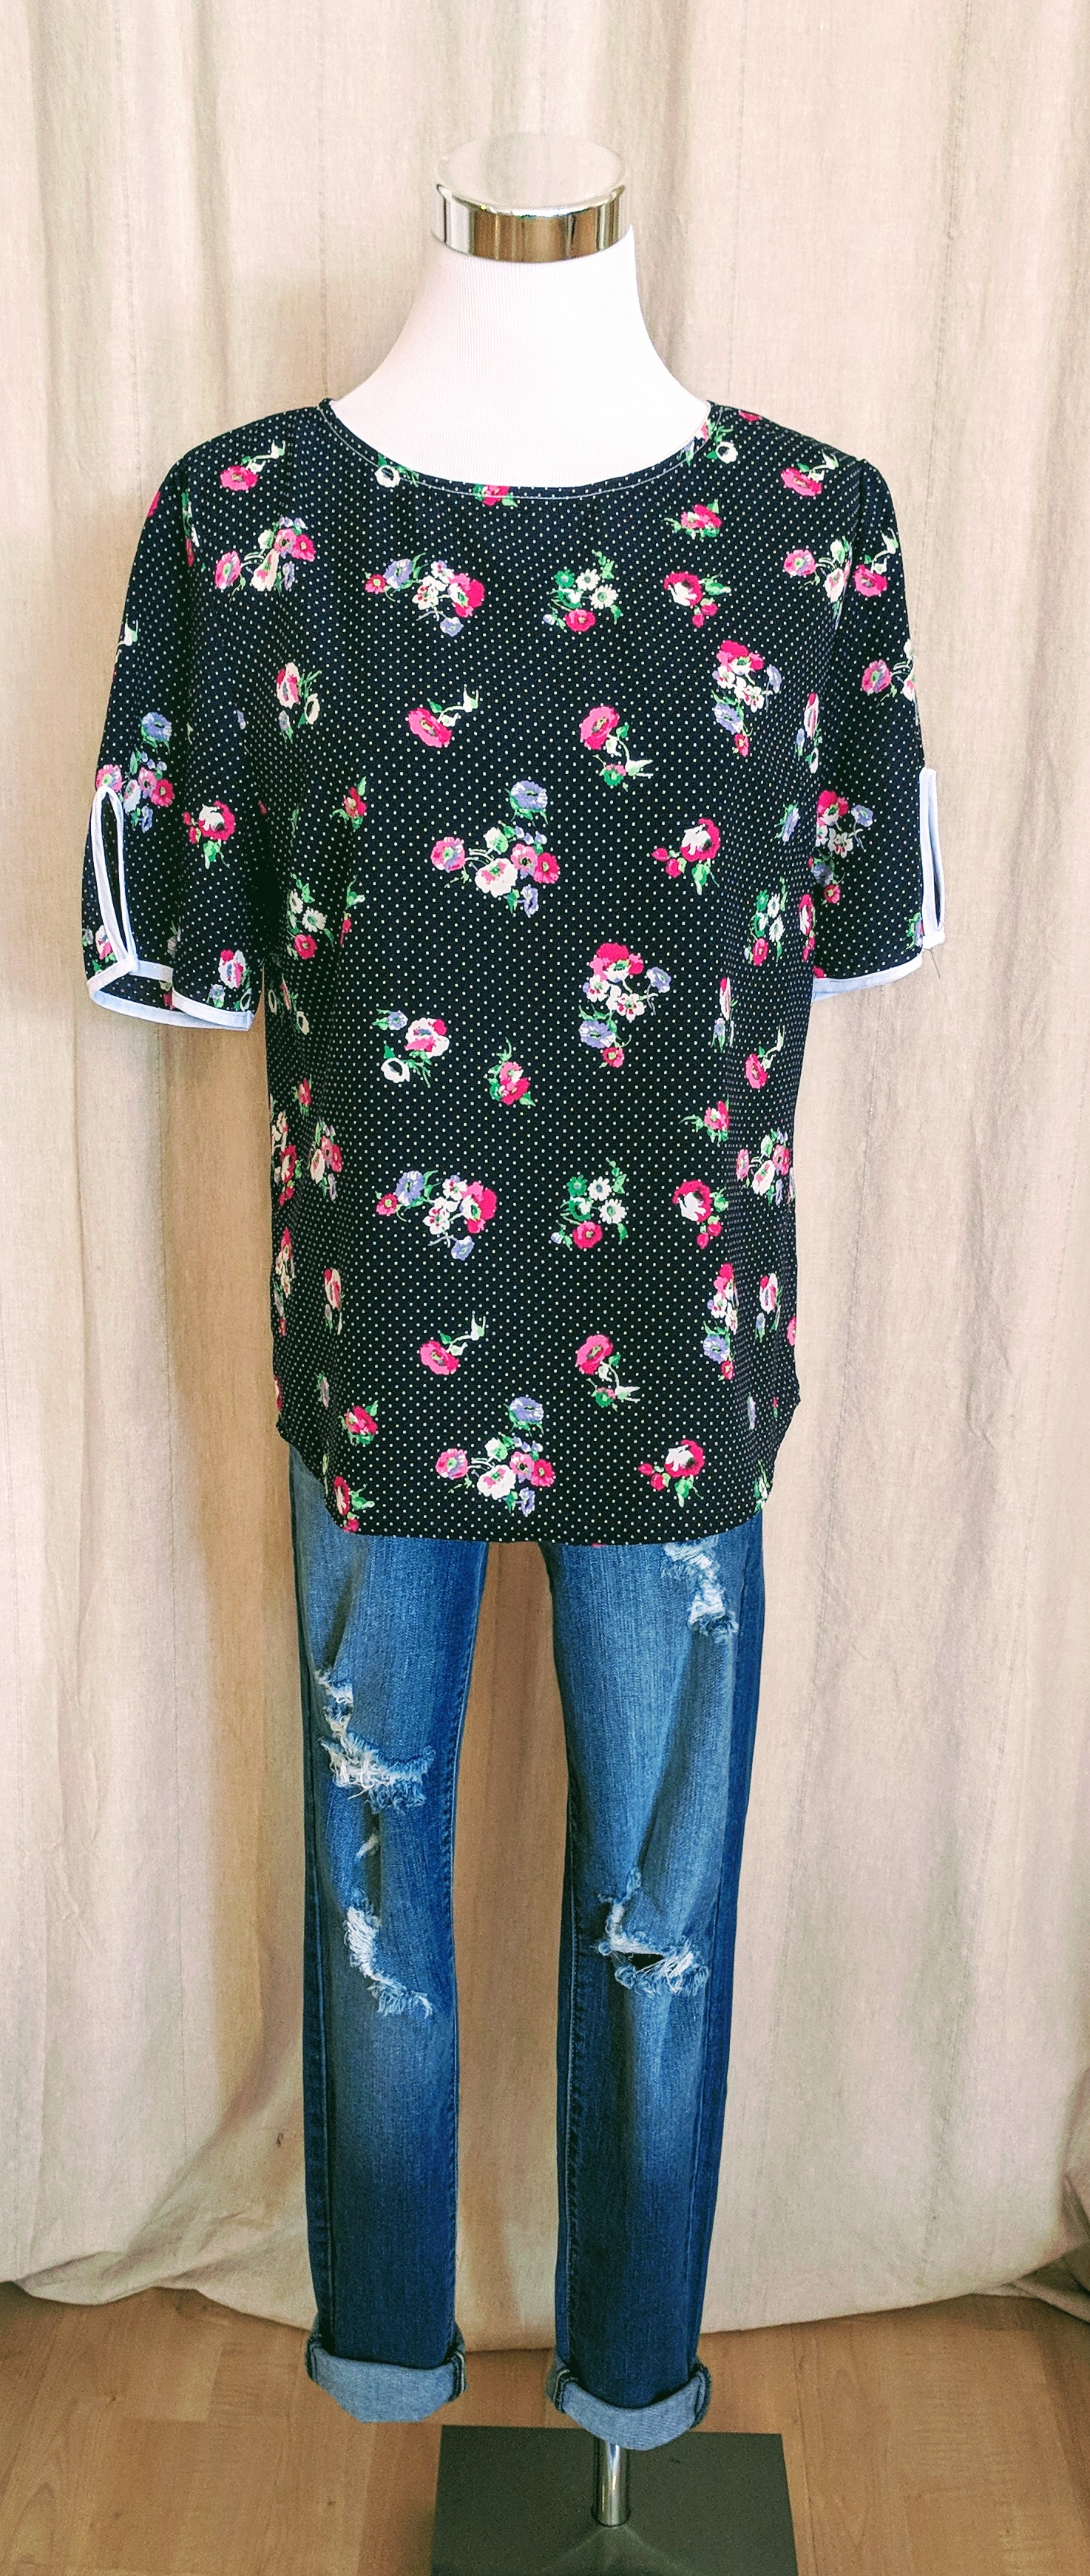 Navy floral short sleeve top with key hole on sleeves. $32